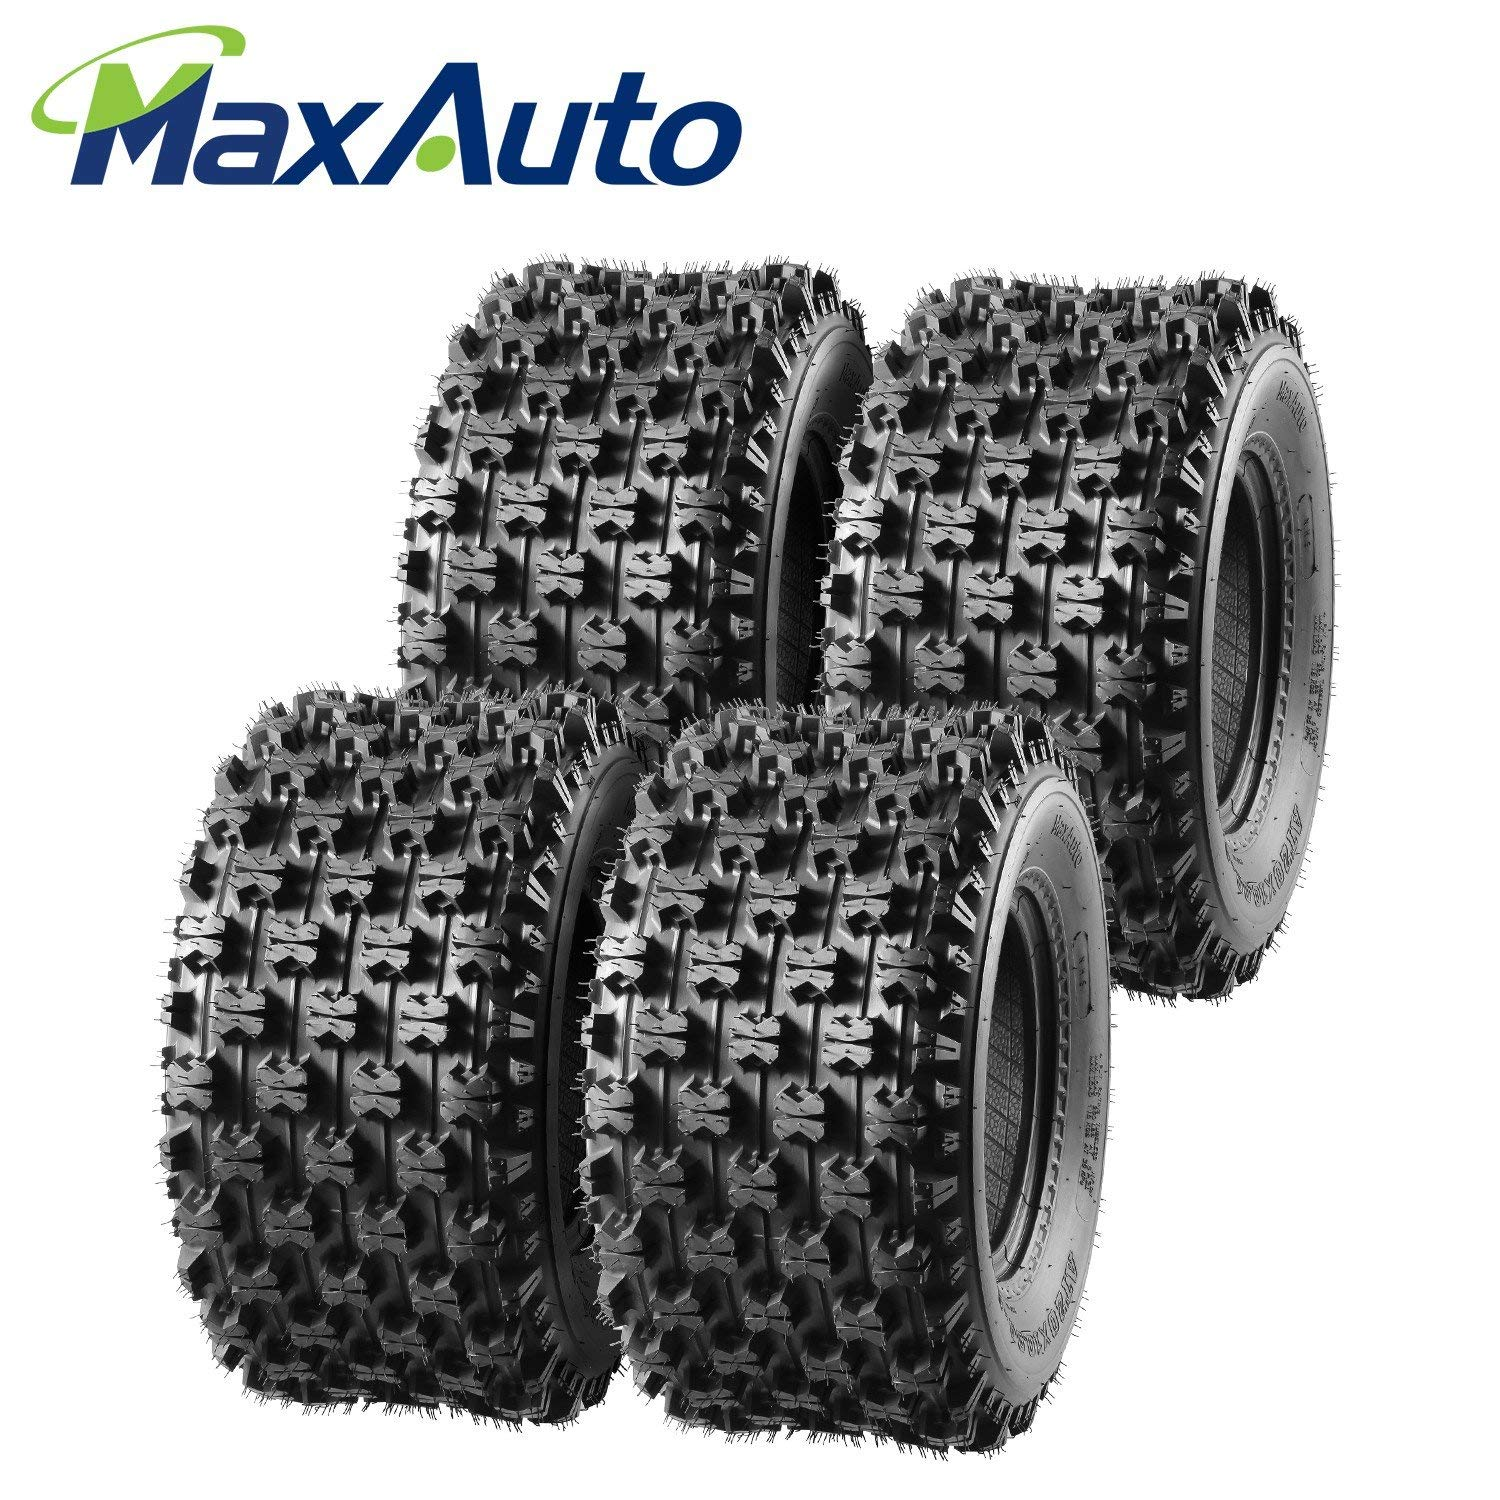 SET 4 21X7-10 20X10-9 YAMAHA YFZ 450 MASSFX  QUAD SPORT ATV TIRES